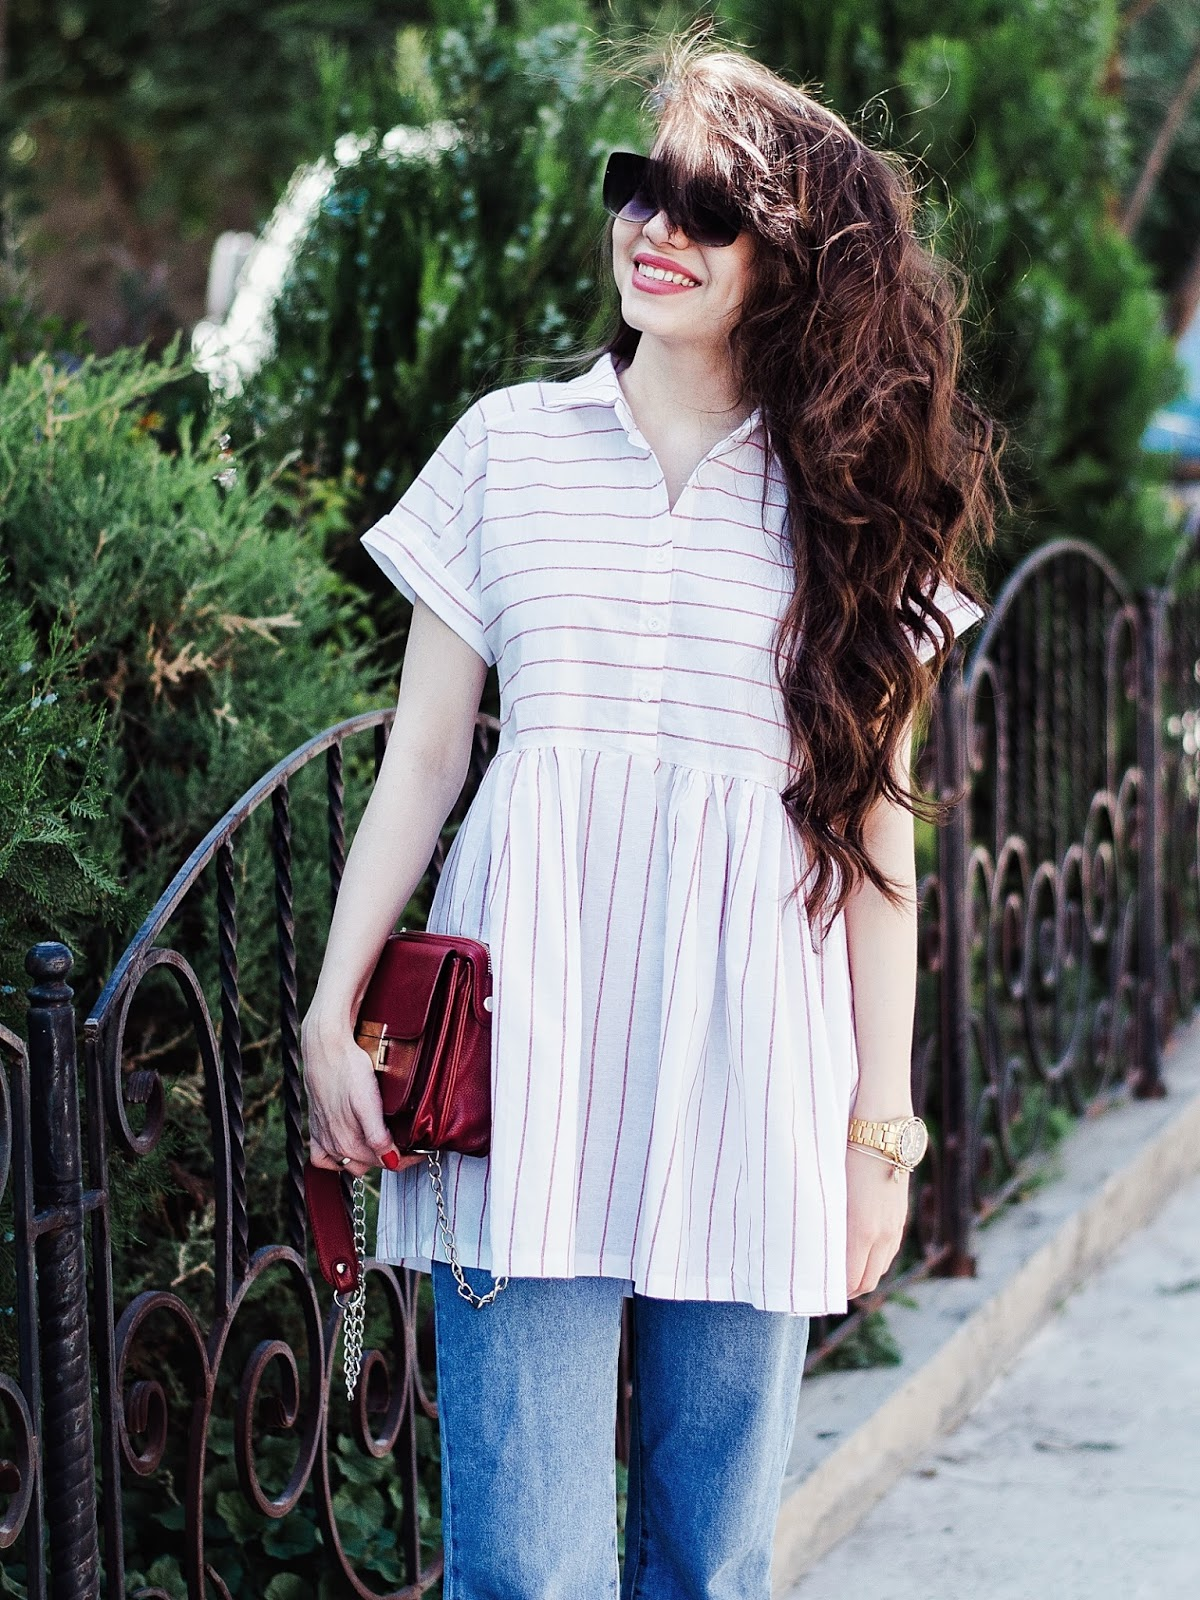 fashion blogger diyorasnotes diyora beta dress and jeans ripped jeans heels sandals pink striped top